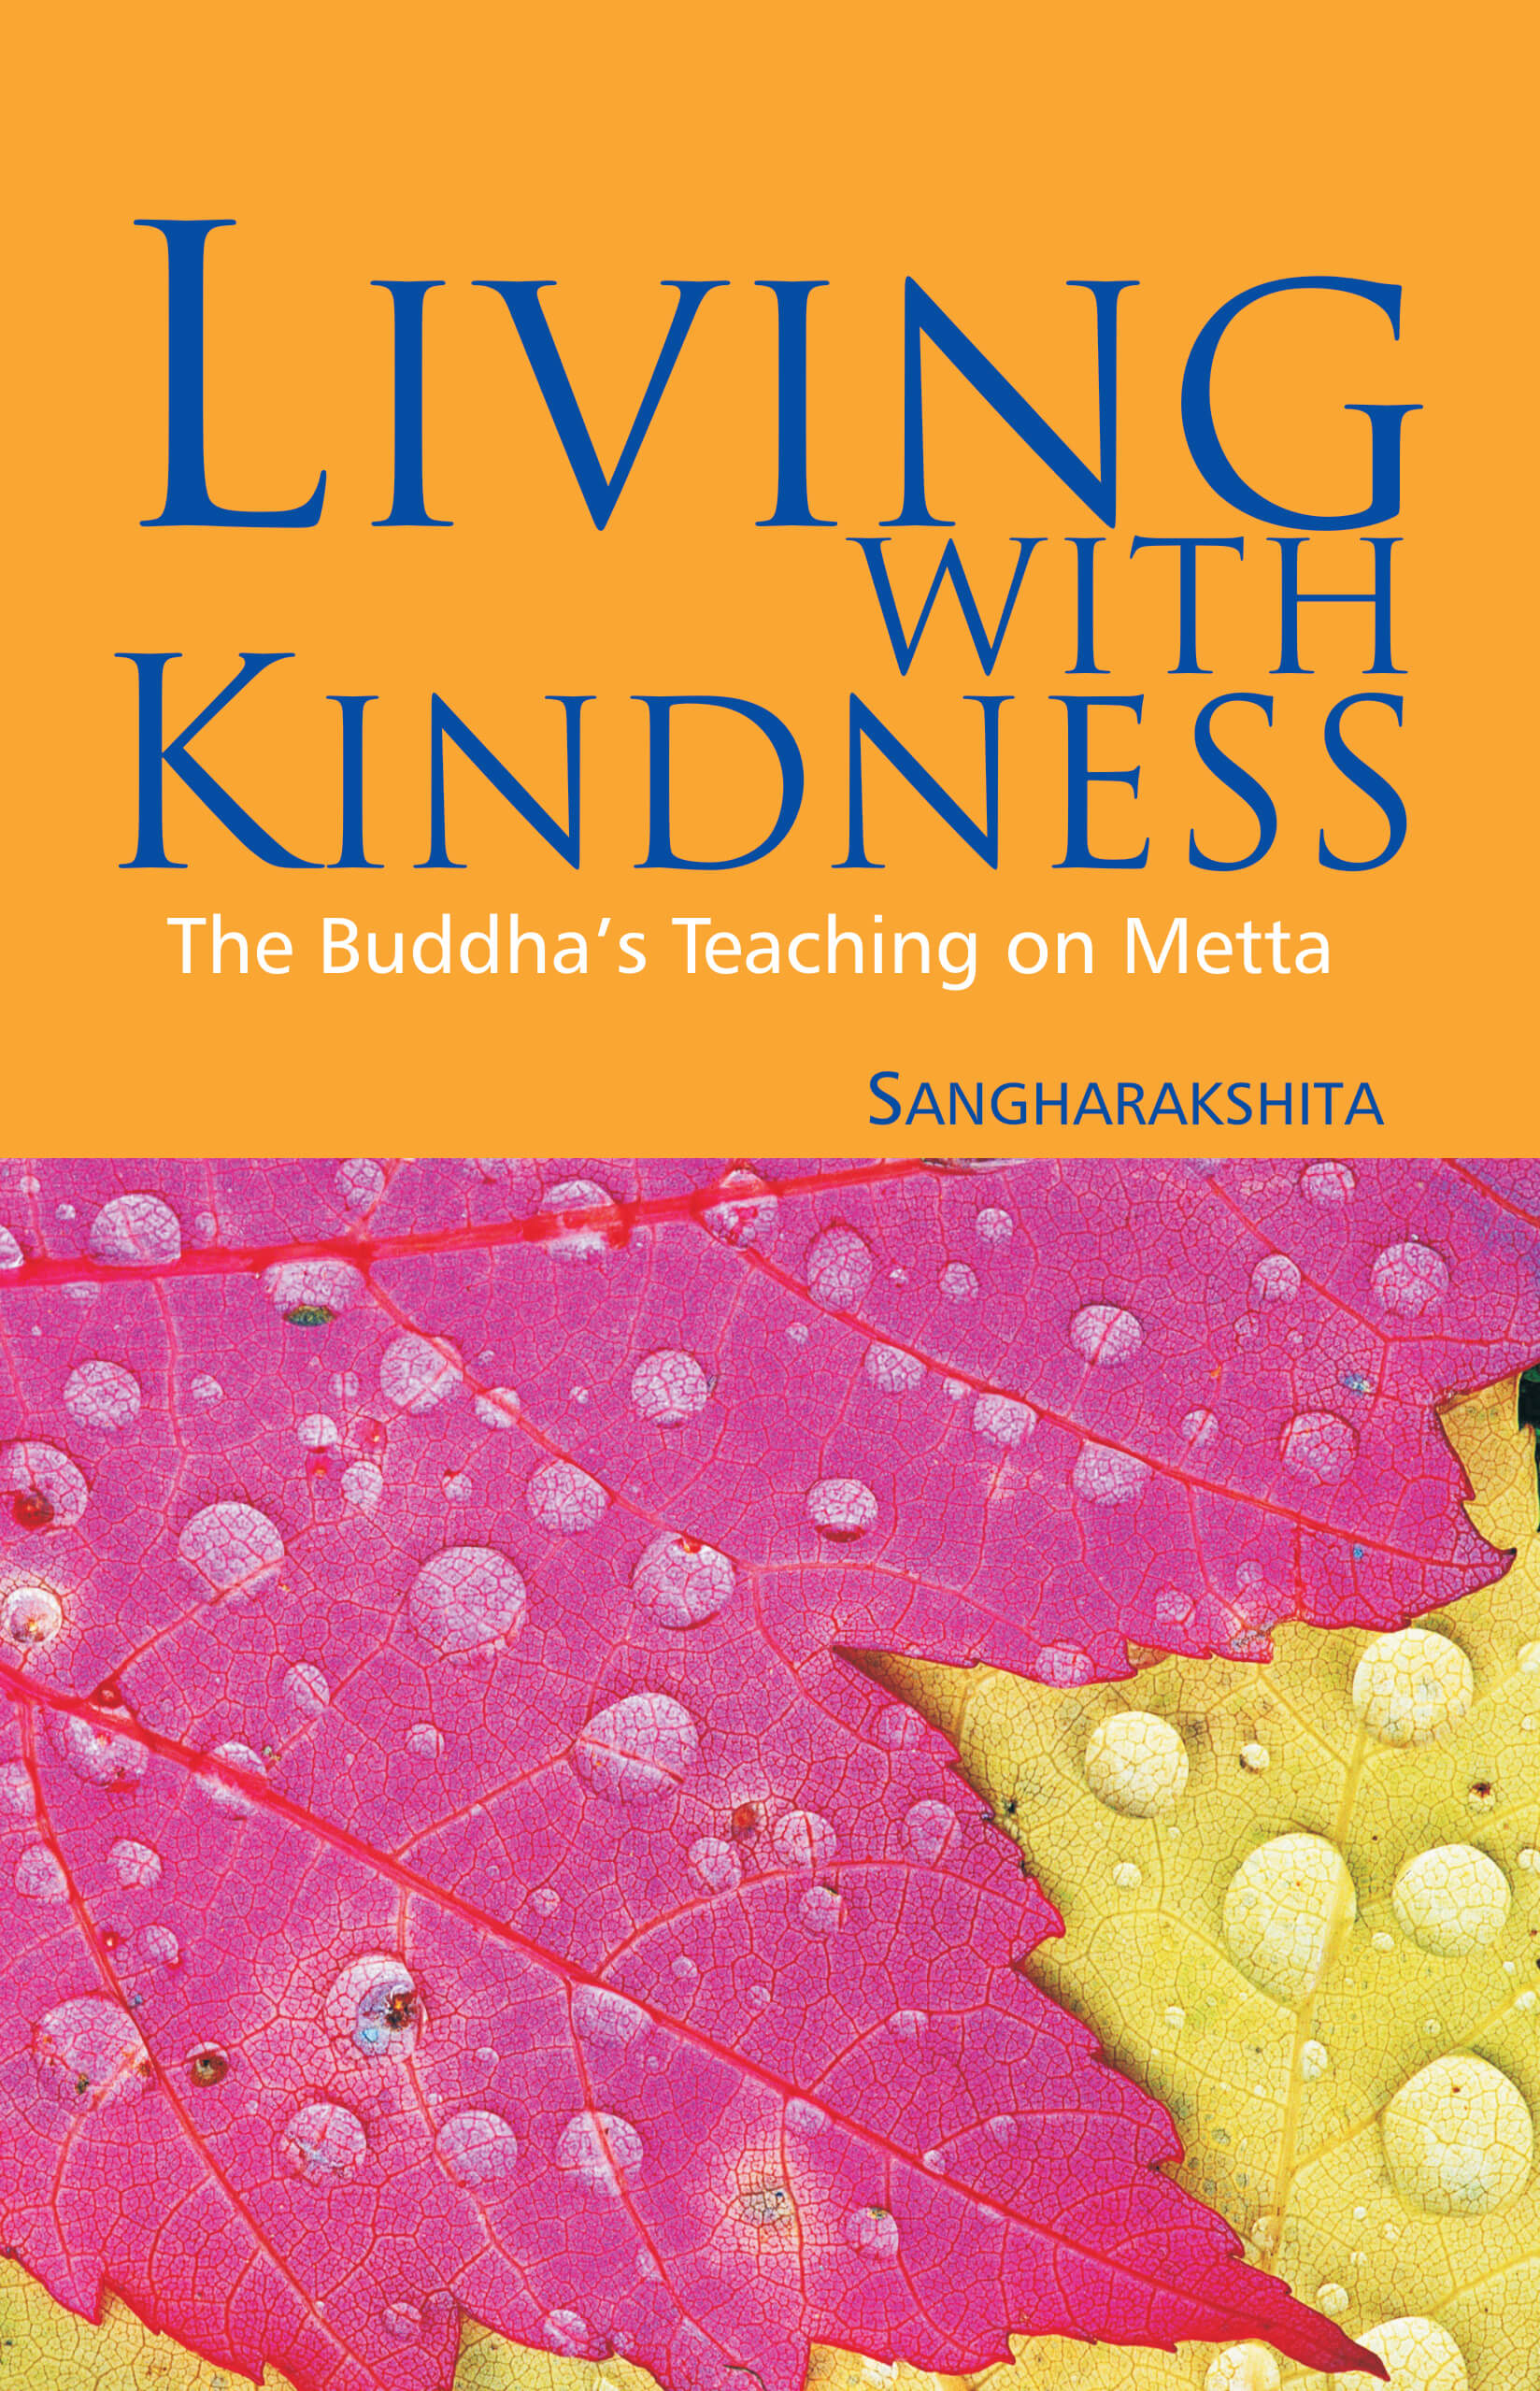 Living with Kindness: The Buddha's Teaching on Metta